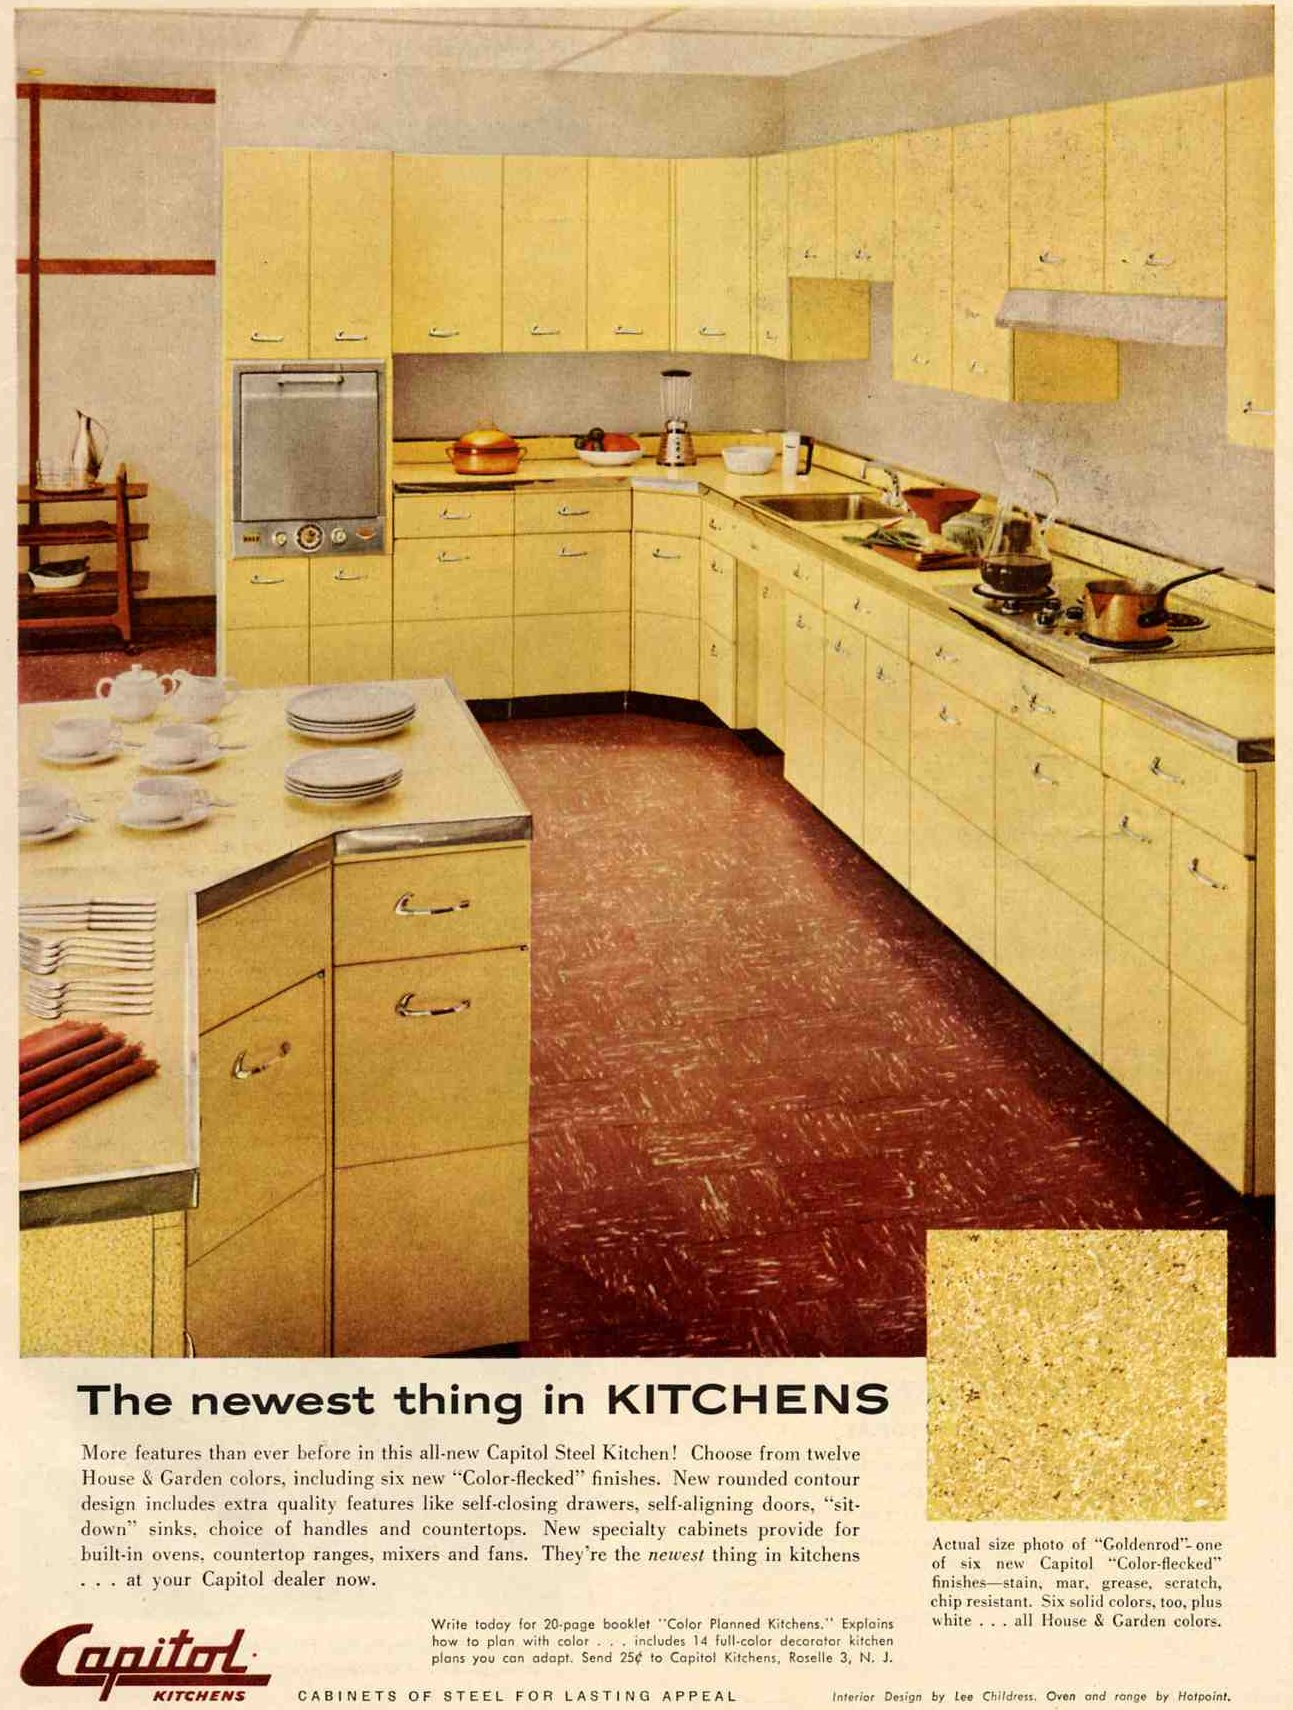 Retro Kitchen Floor Retro Kitchen Products And Ideas Retro Renovation